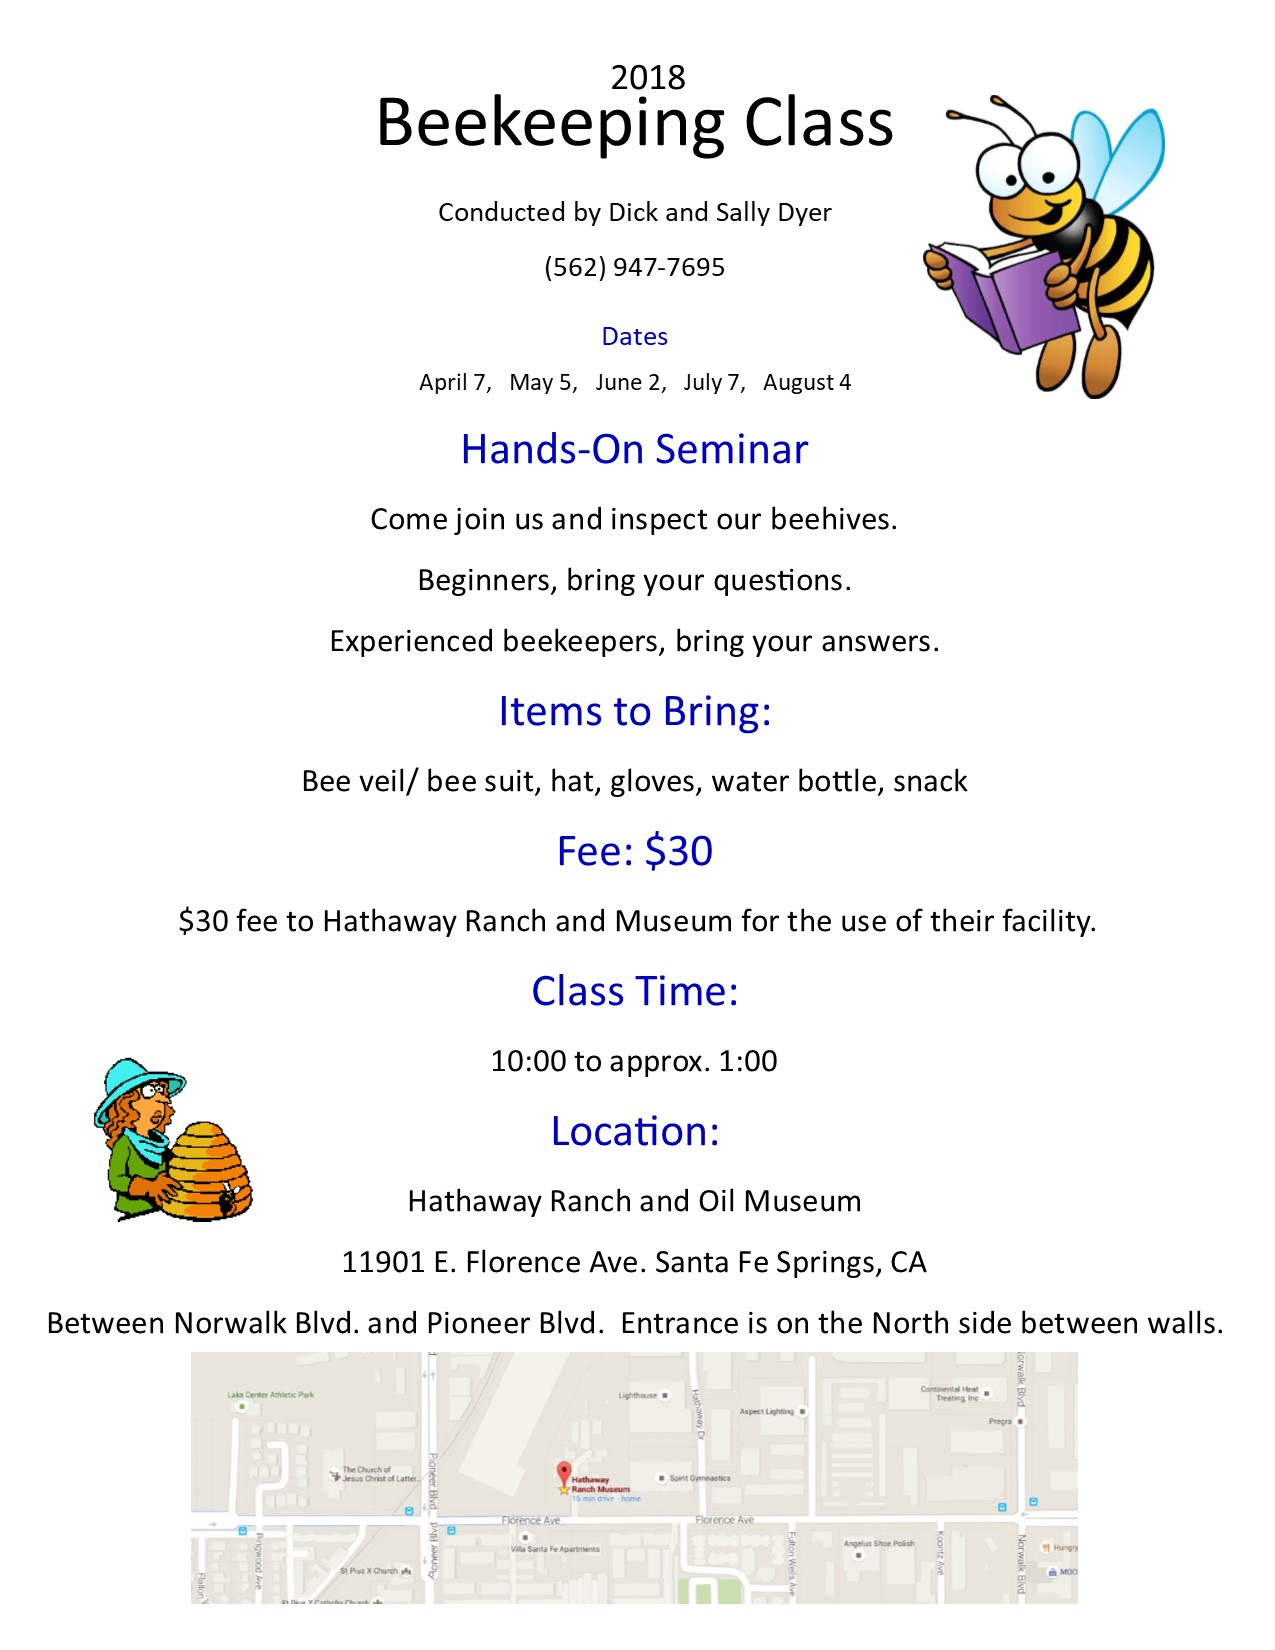 Beekeeping Class and directions 2018.jpg